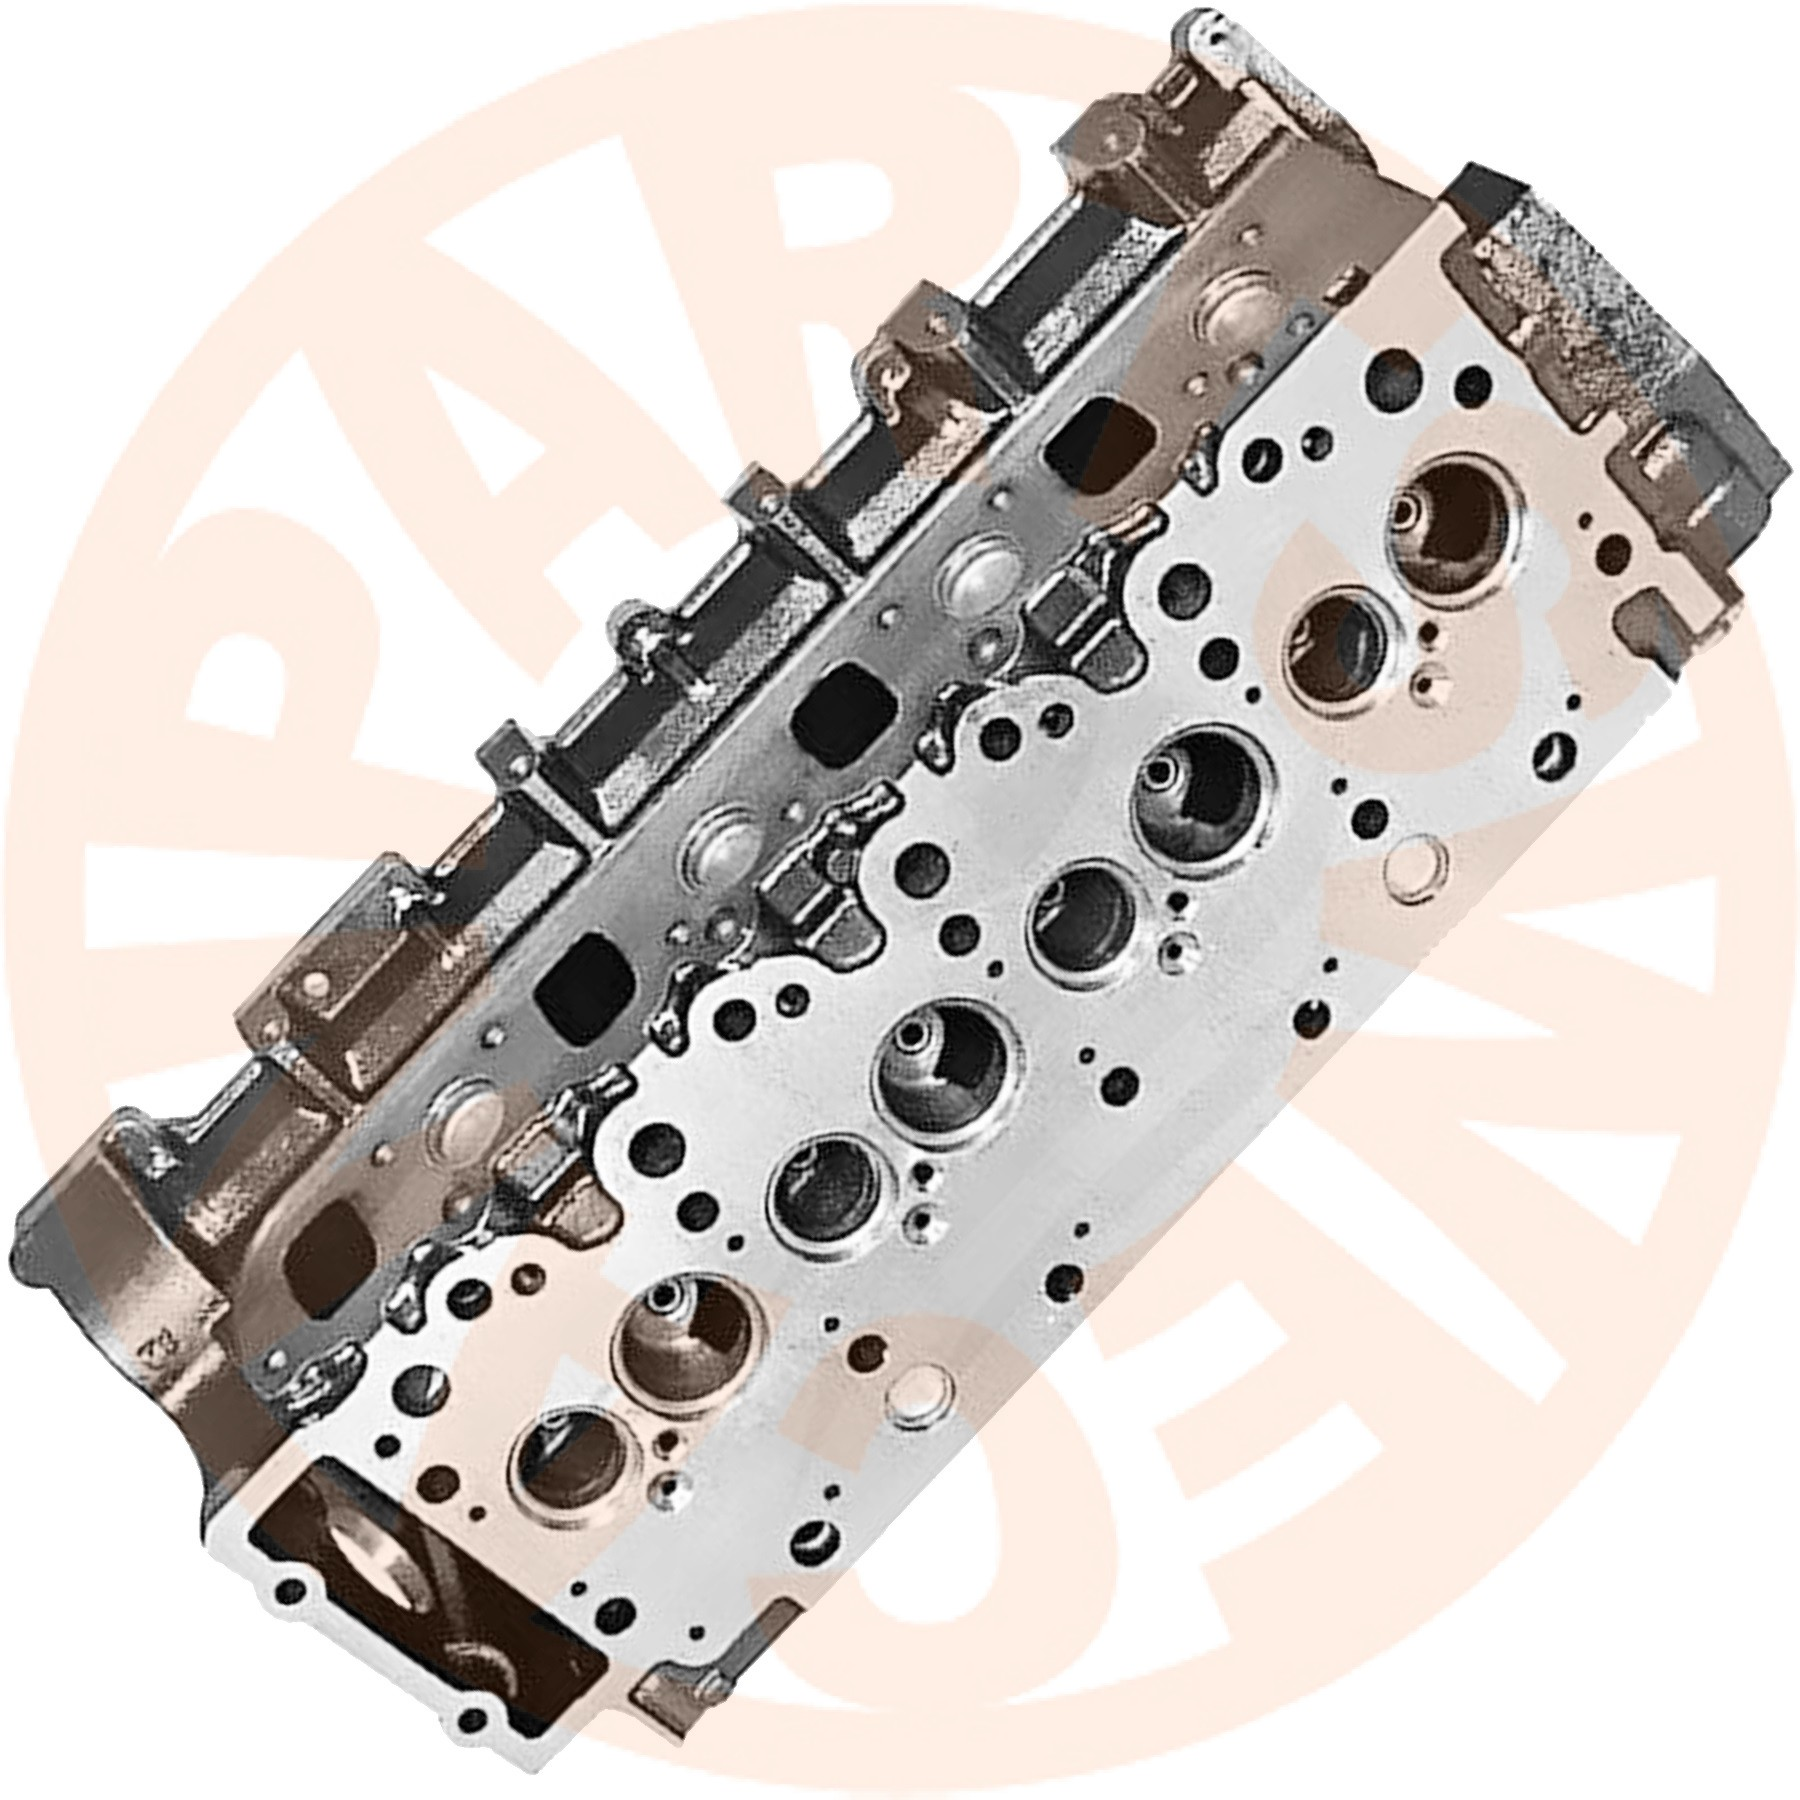 CYLINDER HEAD ISUZU 4HG1 4HG1T ENGINE TRUCK AFTERMARKET PARTS 8-97146-520-2  8-97207-133-1